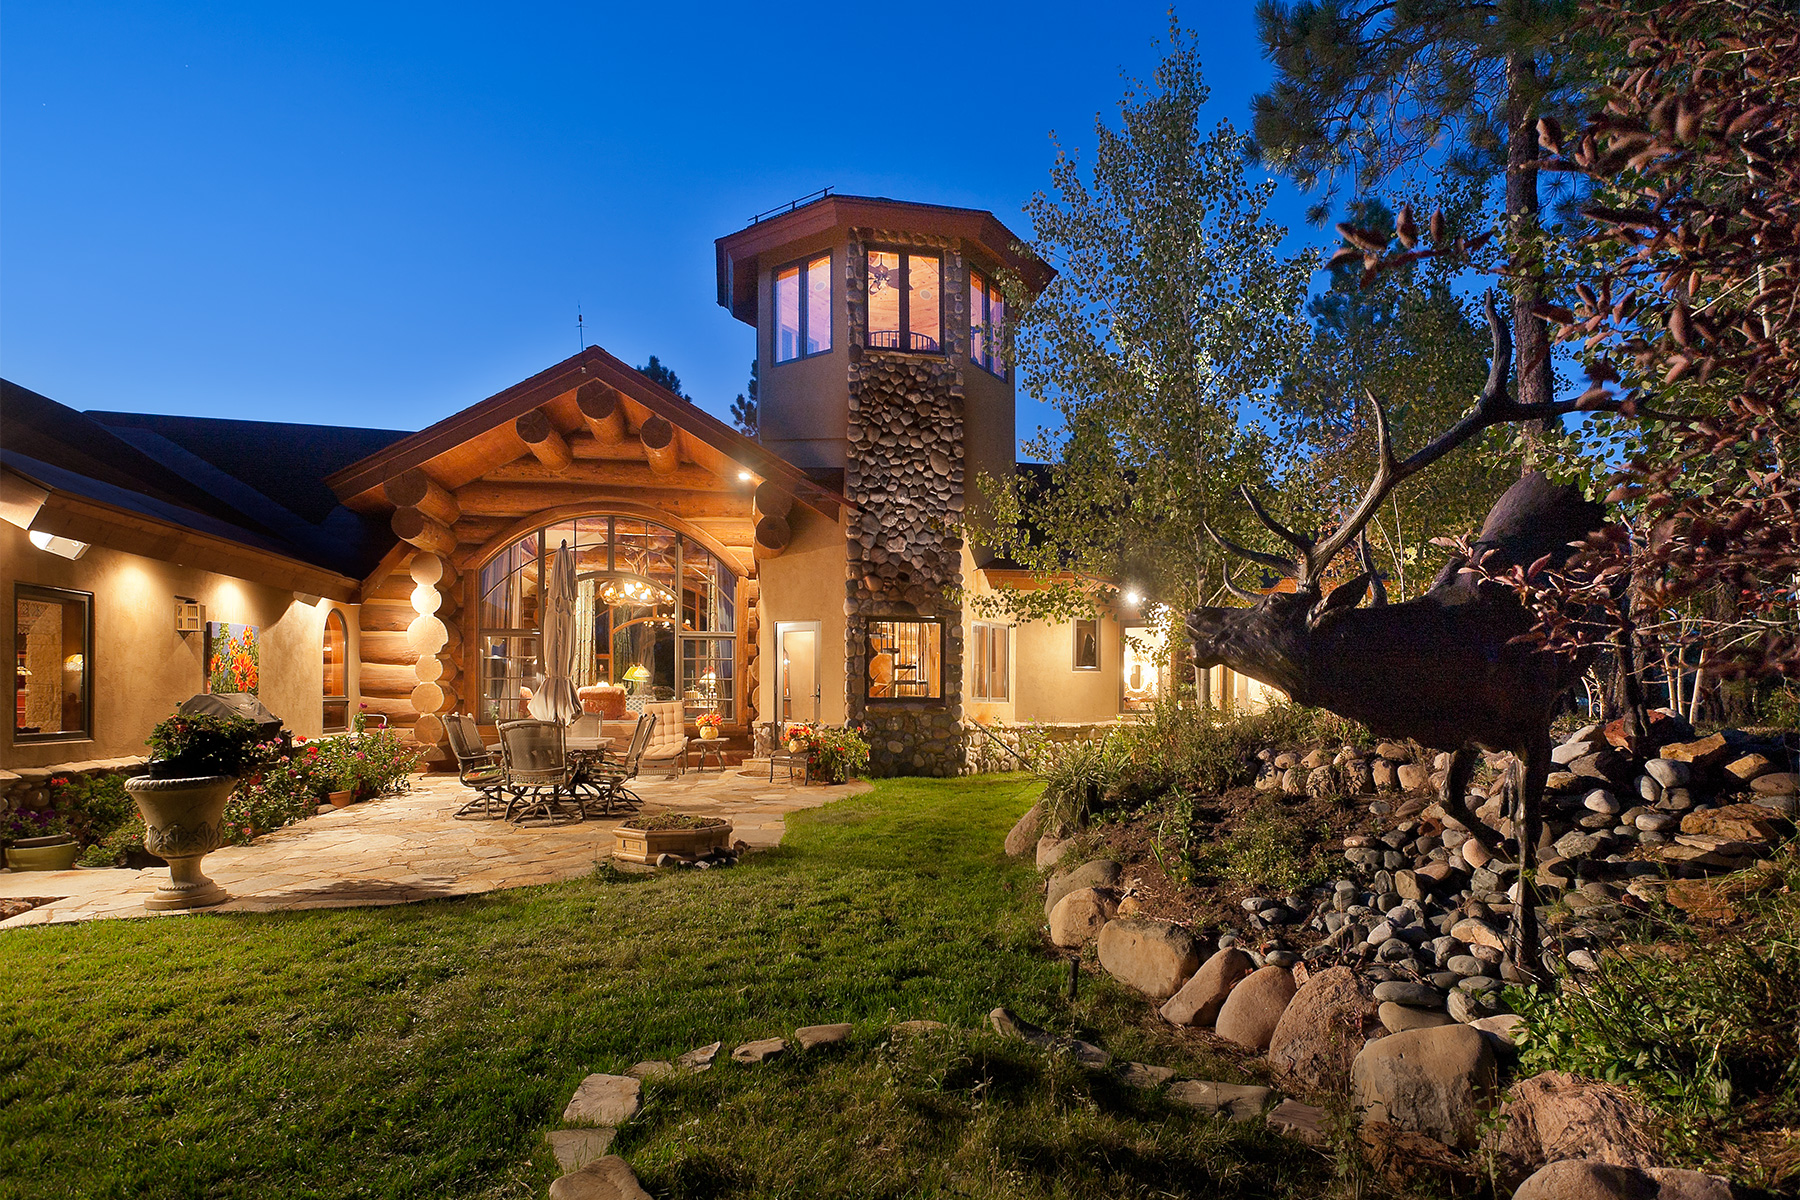 Single Family Home for Active at Elk Pointe Estate 3101 Hidden Valley Drive Pagosa Springs, Colorado 81147 United States